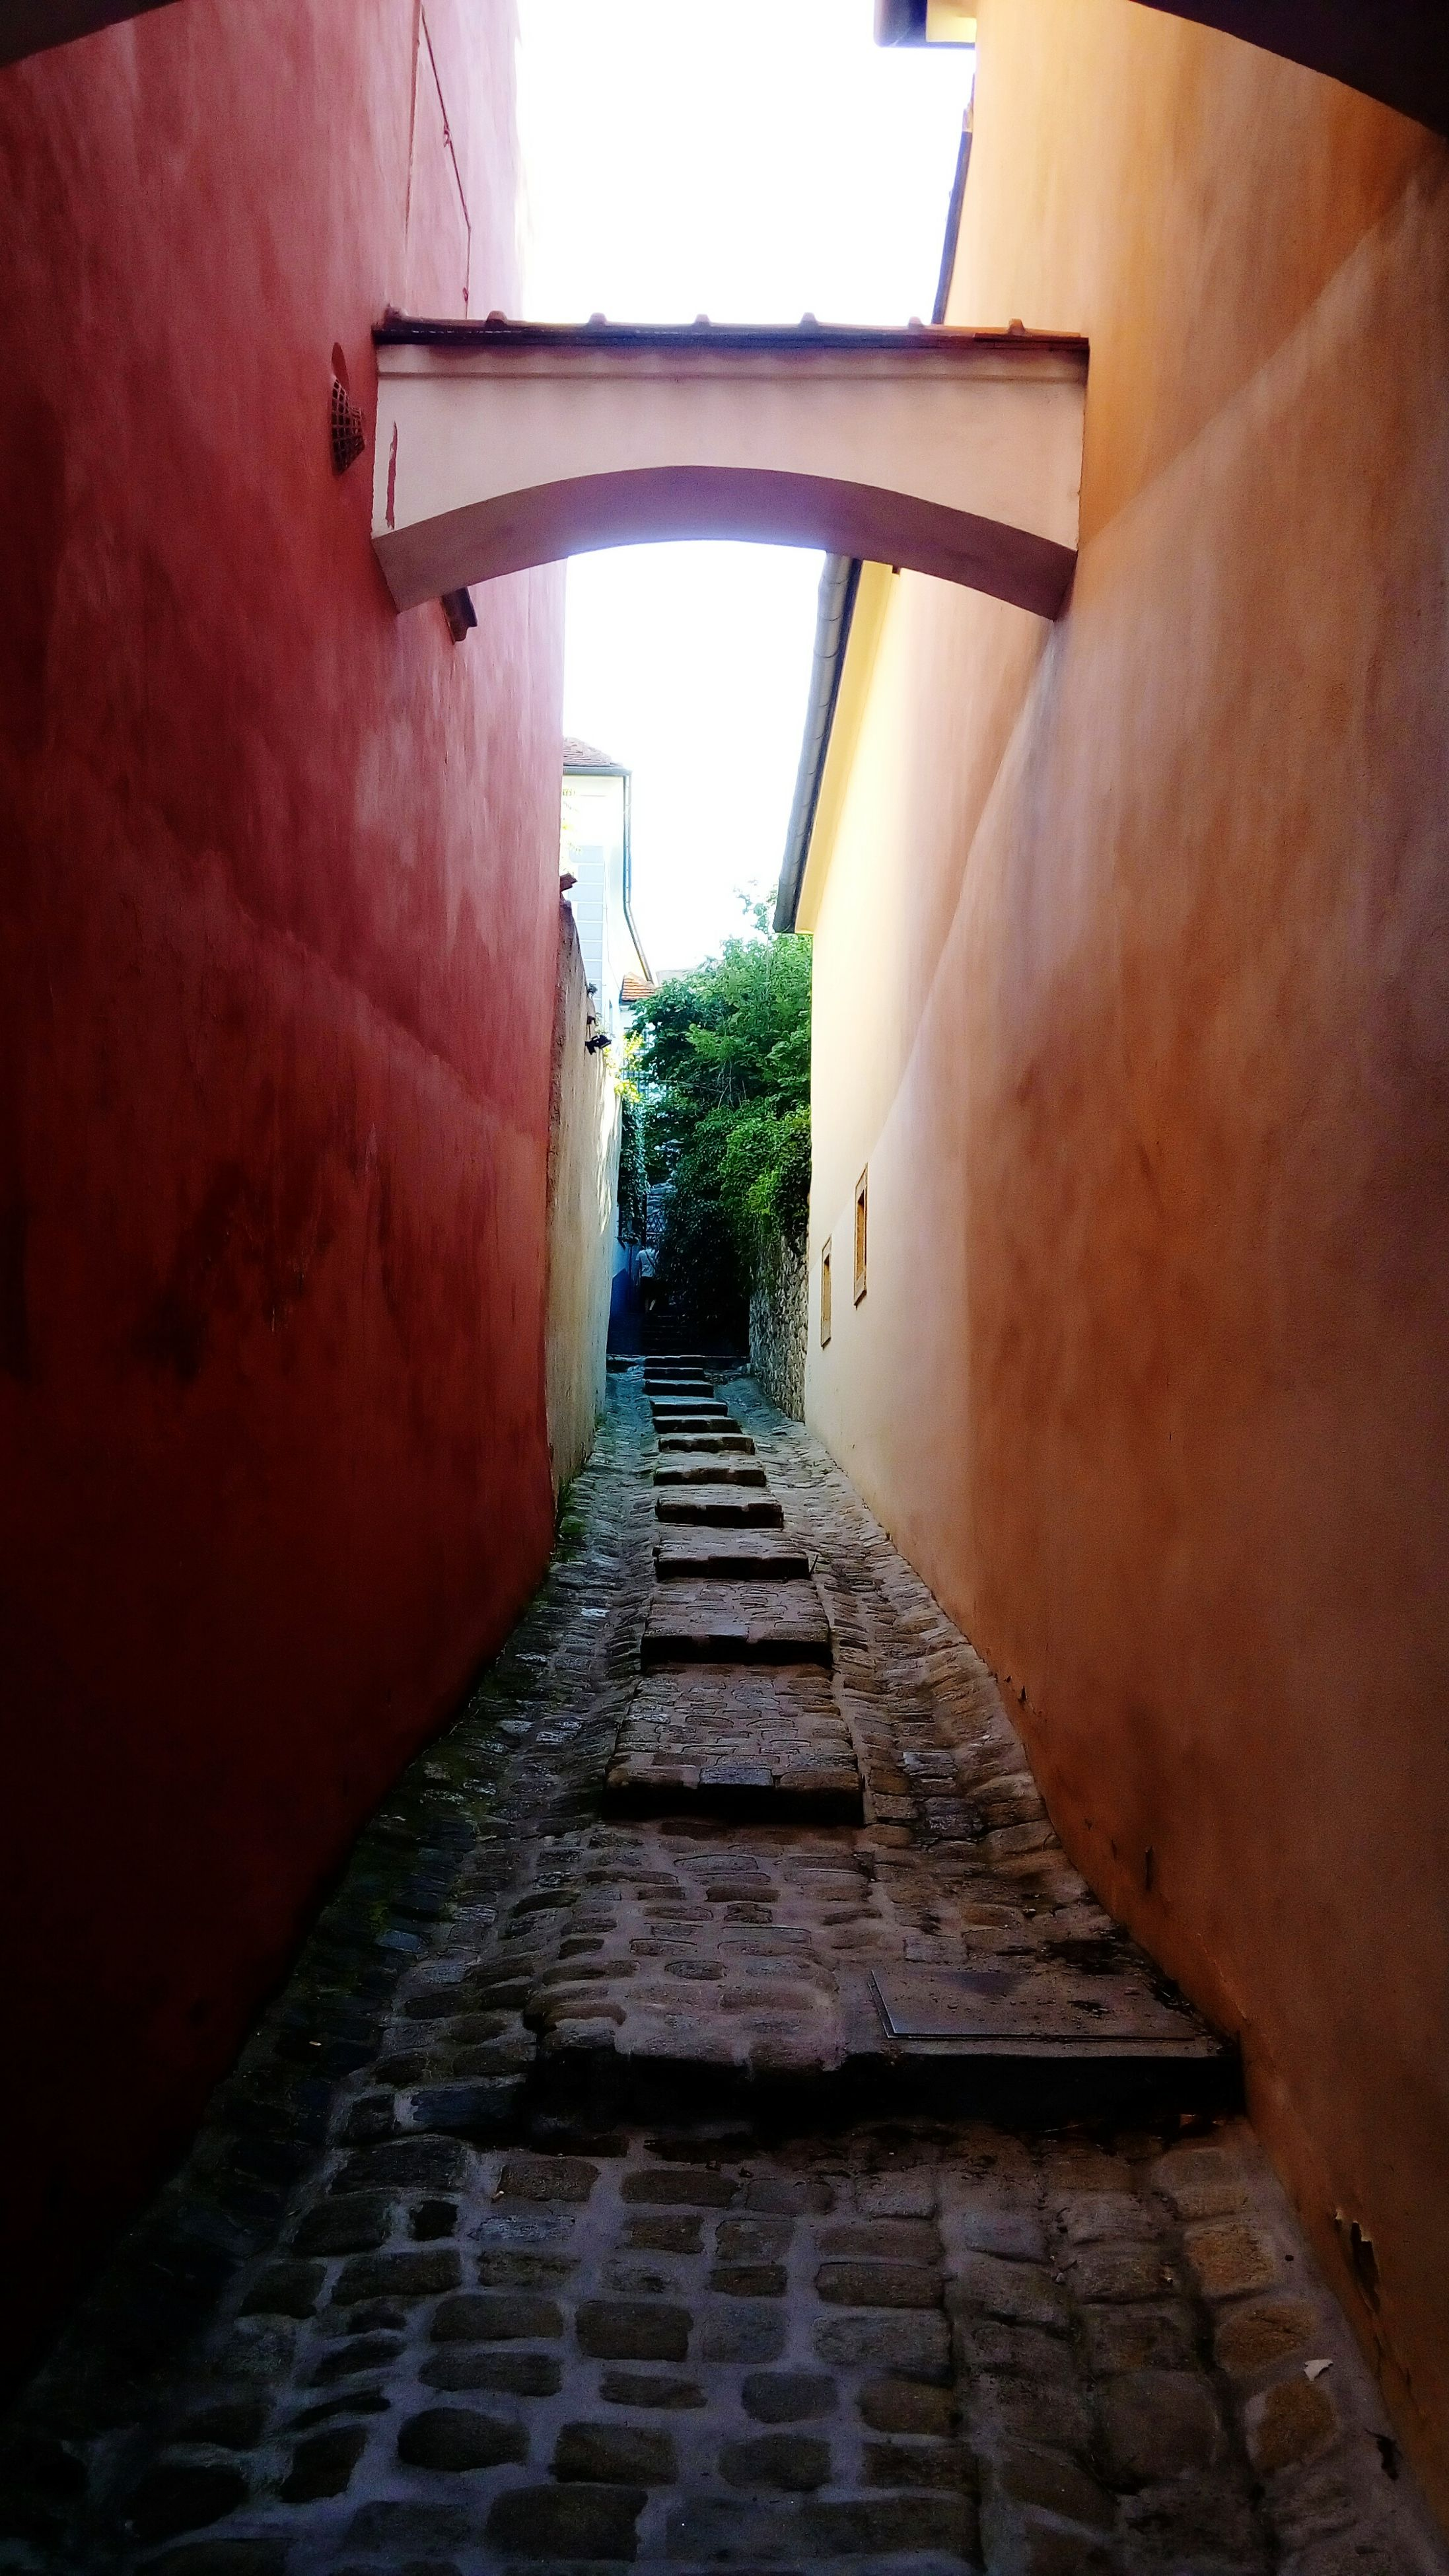 the way forward, architecture, built structure, building exterior, diminishing perspective, narrow, steps, wall - building feature, vanishing point, alley, walkway, building, pathway, footpath, steps and staircases, wall, cobblestone, leading, house, long